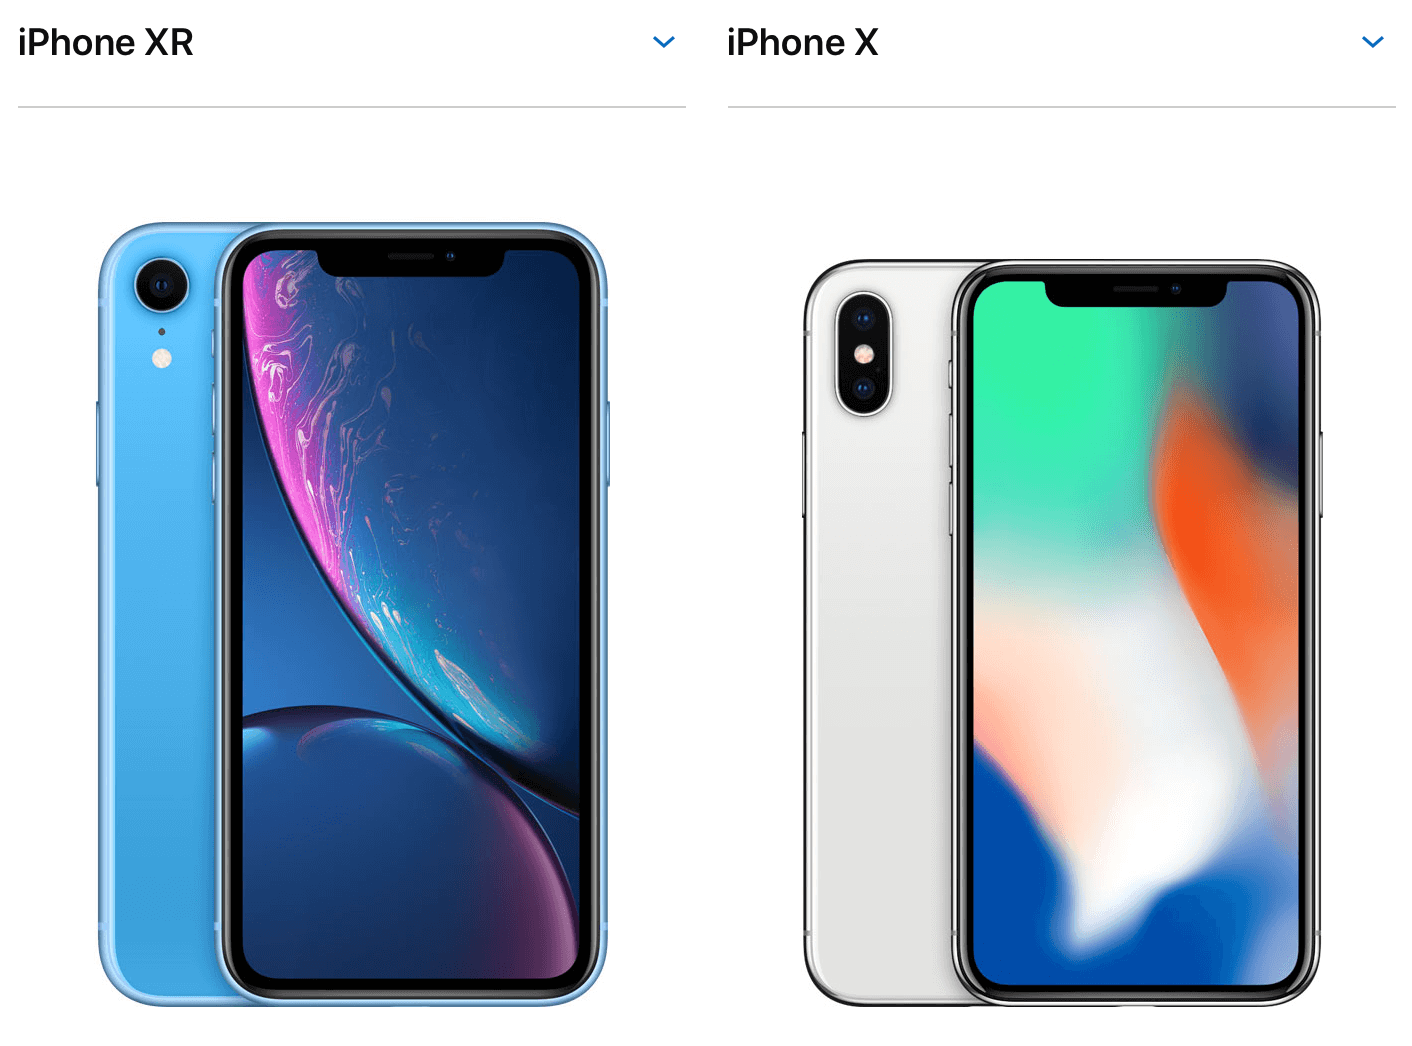 iPhone XR&iPhone X image